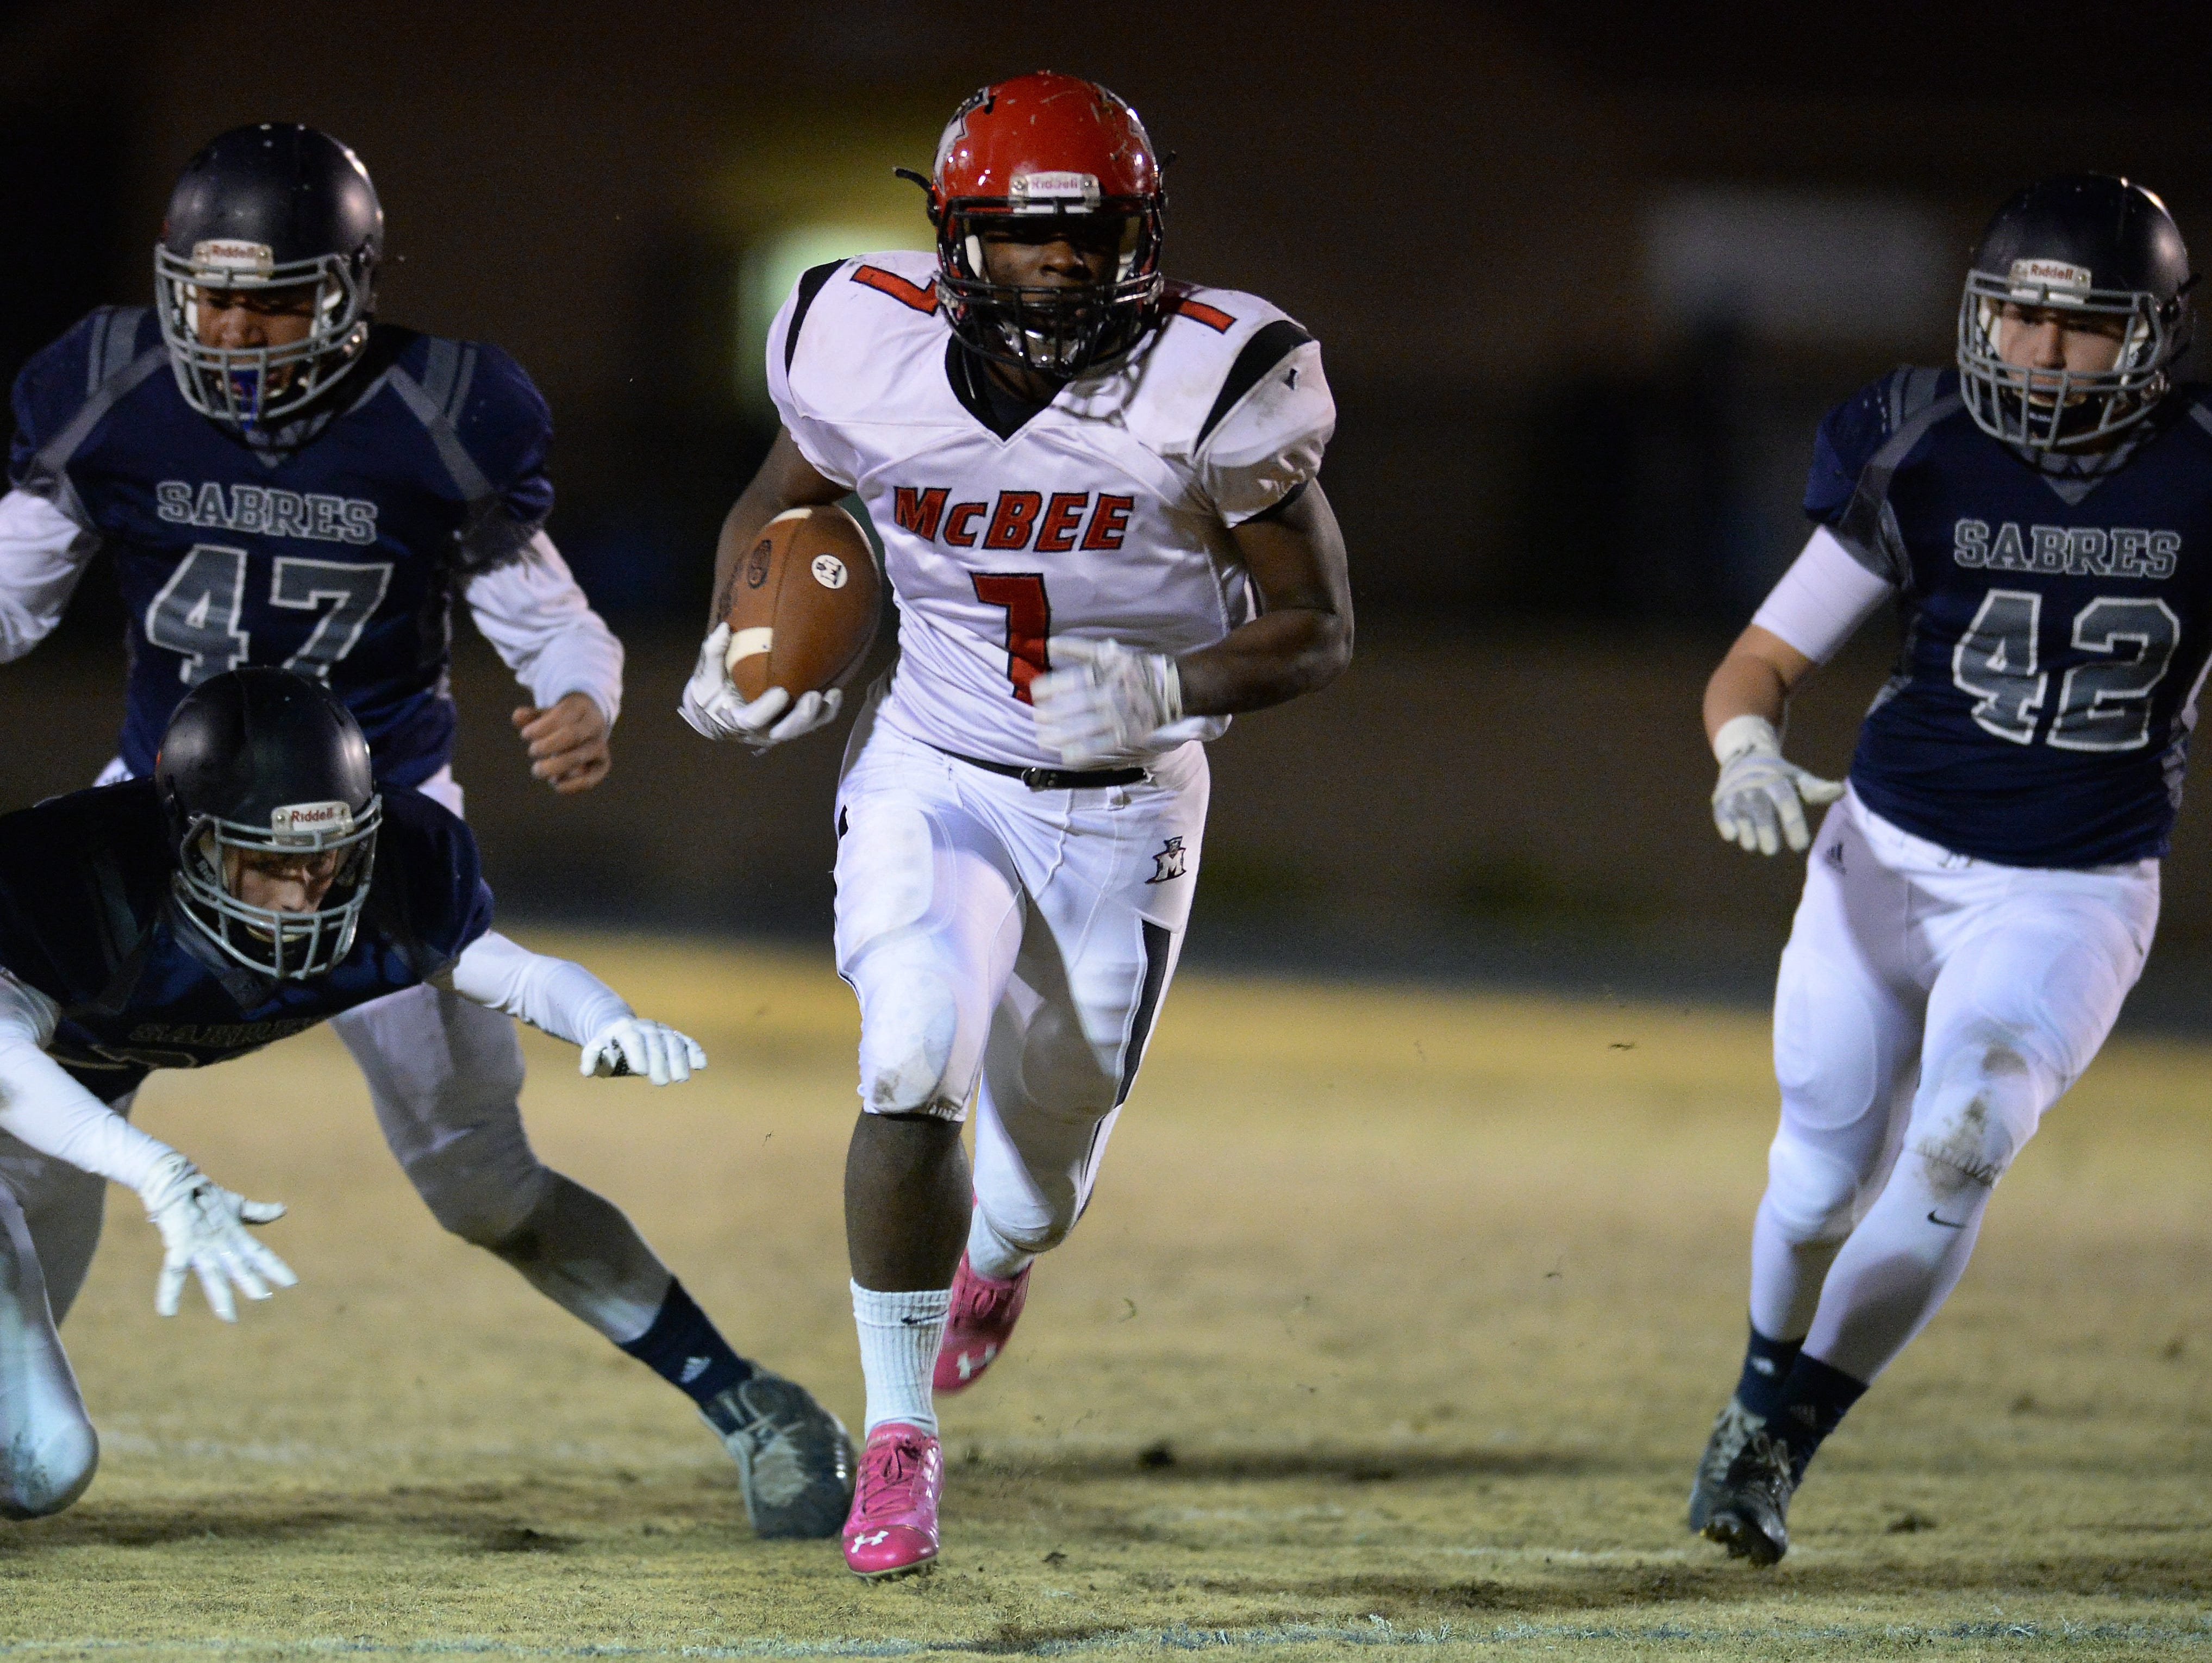 McBee's Dashonnell Wright (7) breaks free to score against Southside Christian during the Class A Division I playoffs Friday, November 27, 2015.